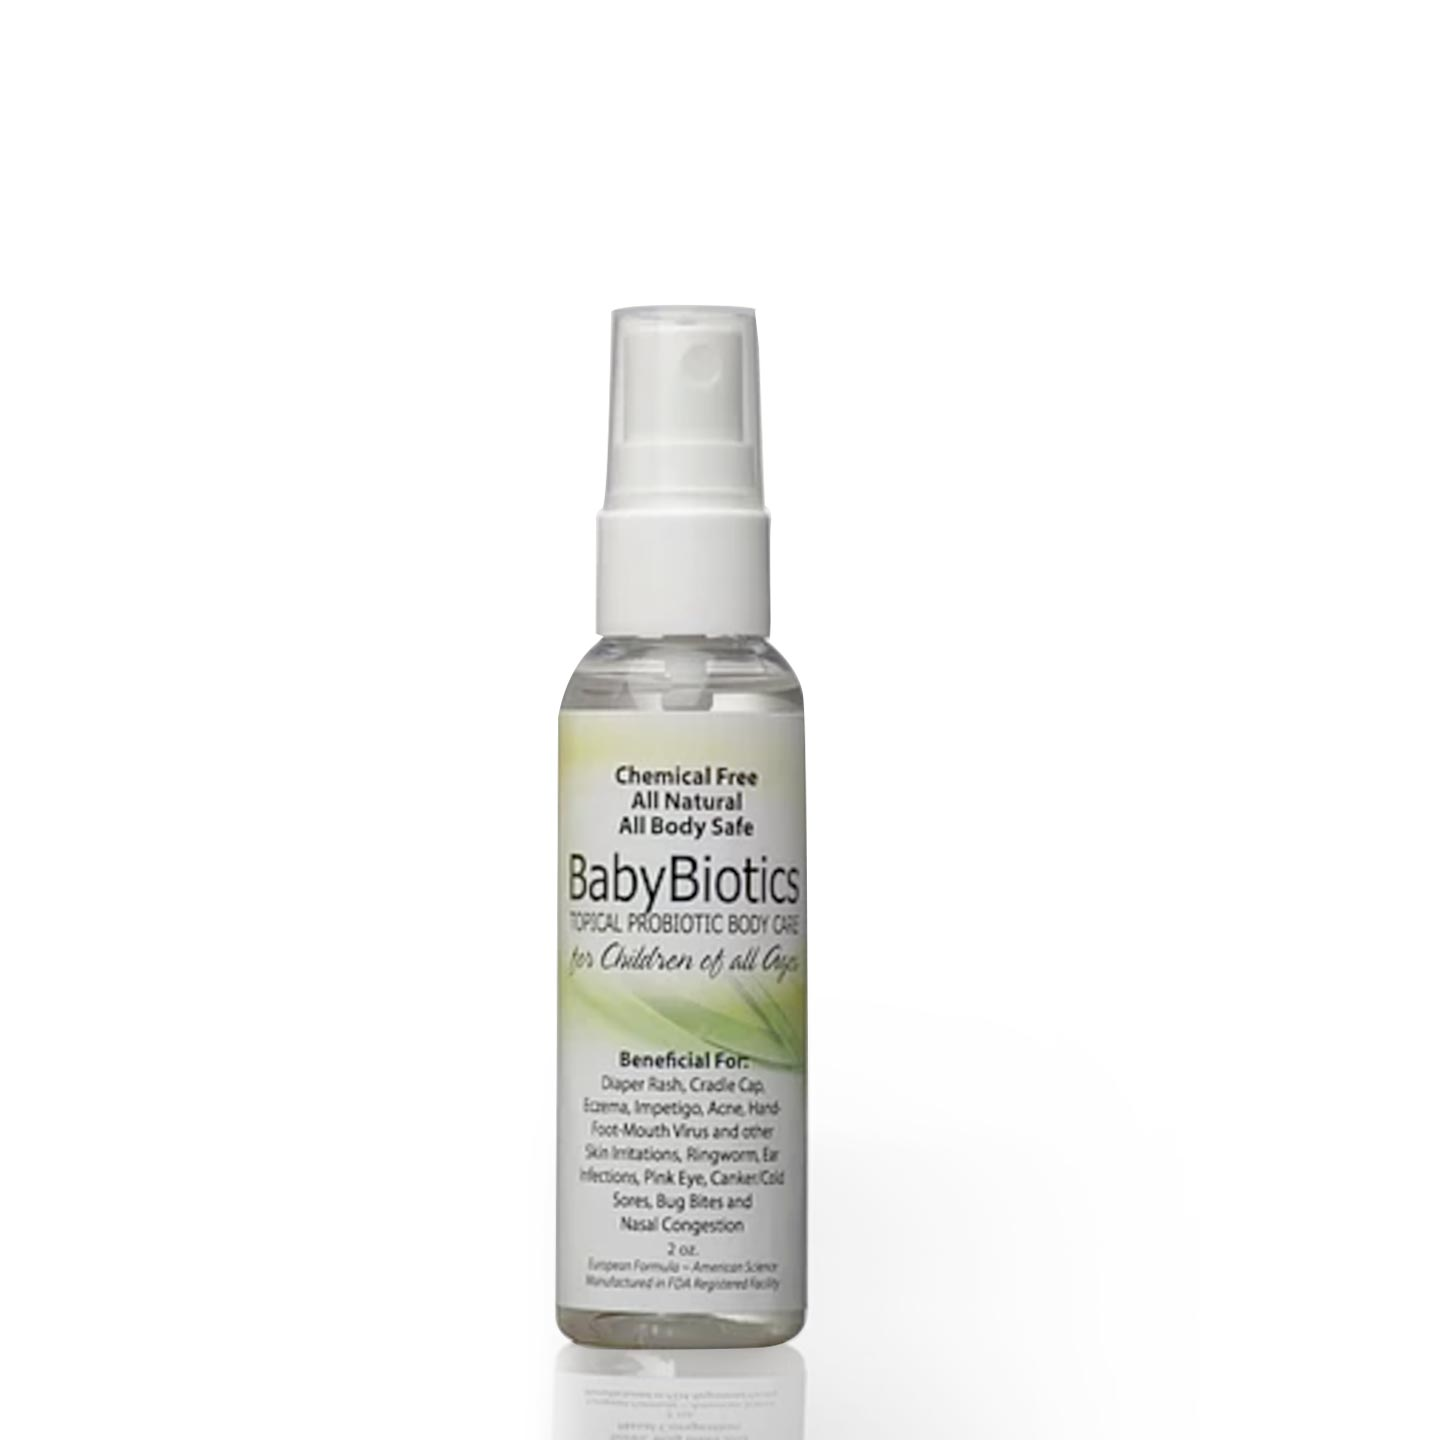 BabyBiotics - Natural Probiotics Skin Care Spray for Children of All Ages | Siani Skin Care Probiotic